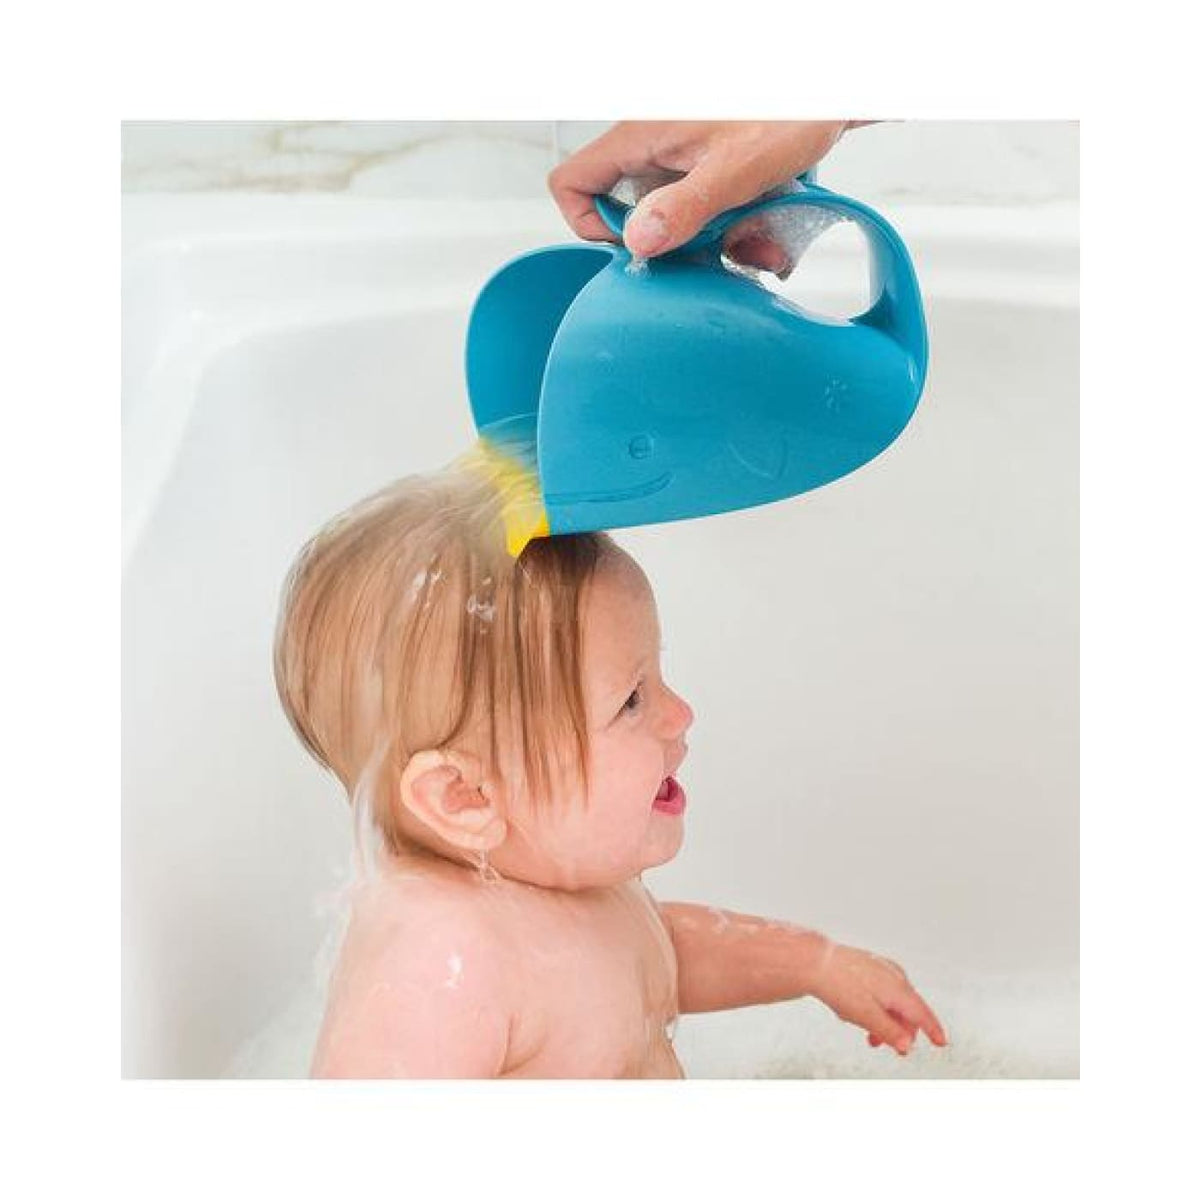 Skip Hop Moby Waterfall Rinser - Blue - BATHTIME & CHANGING - BATH TOYS/AIDS